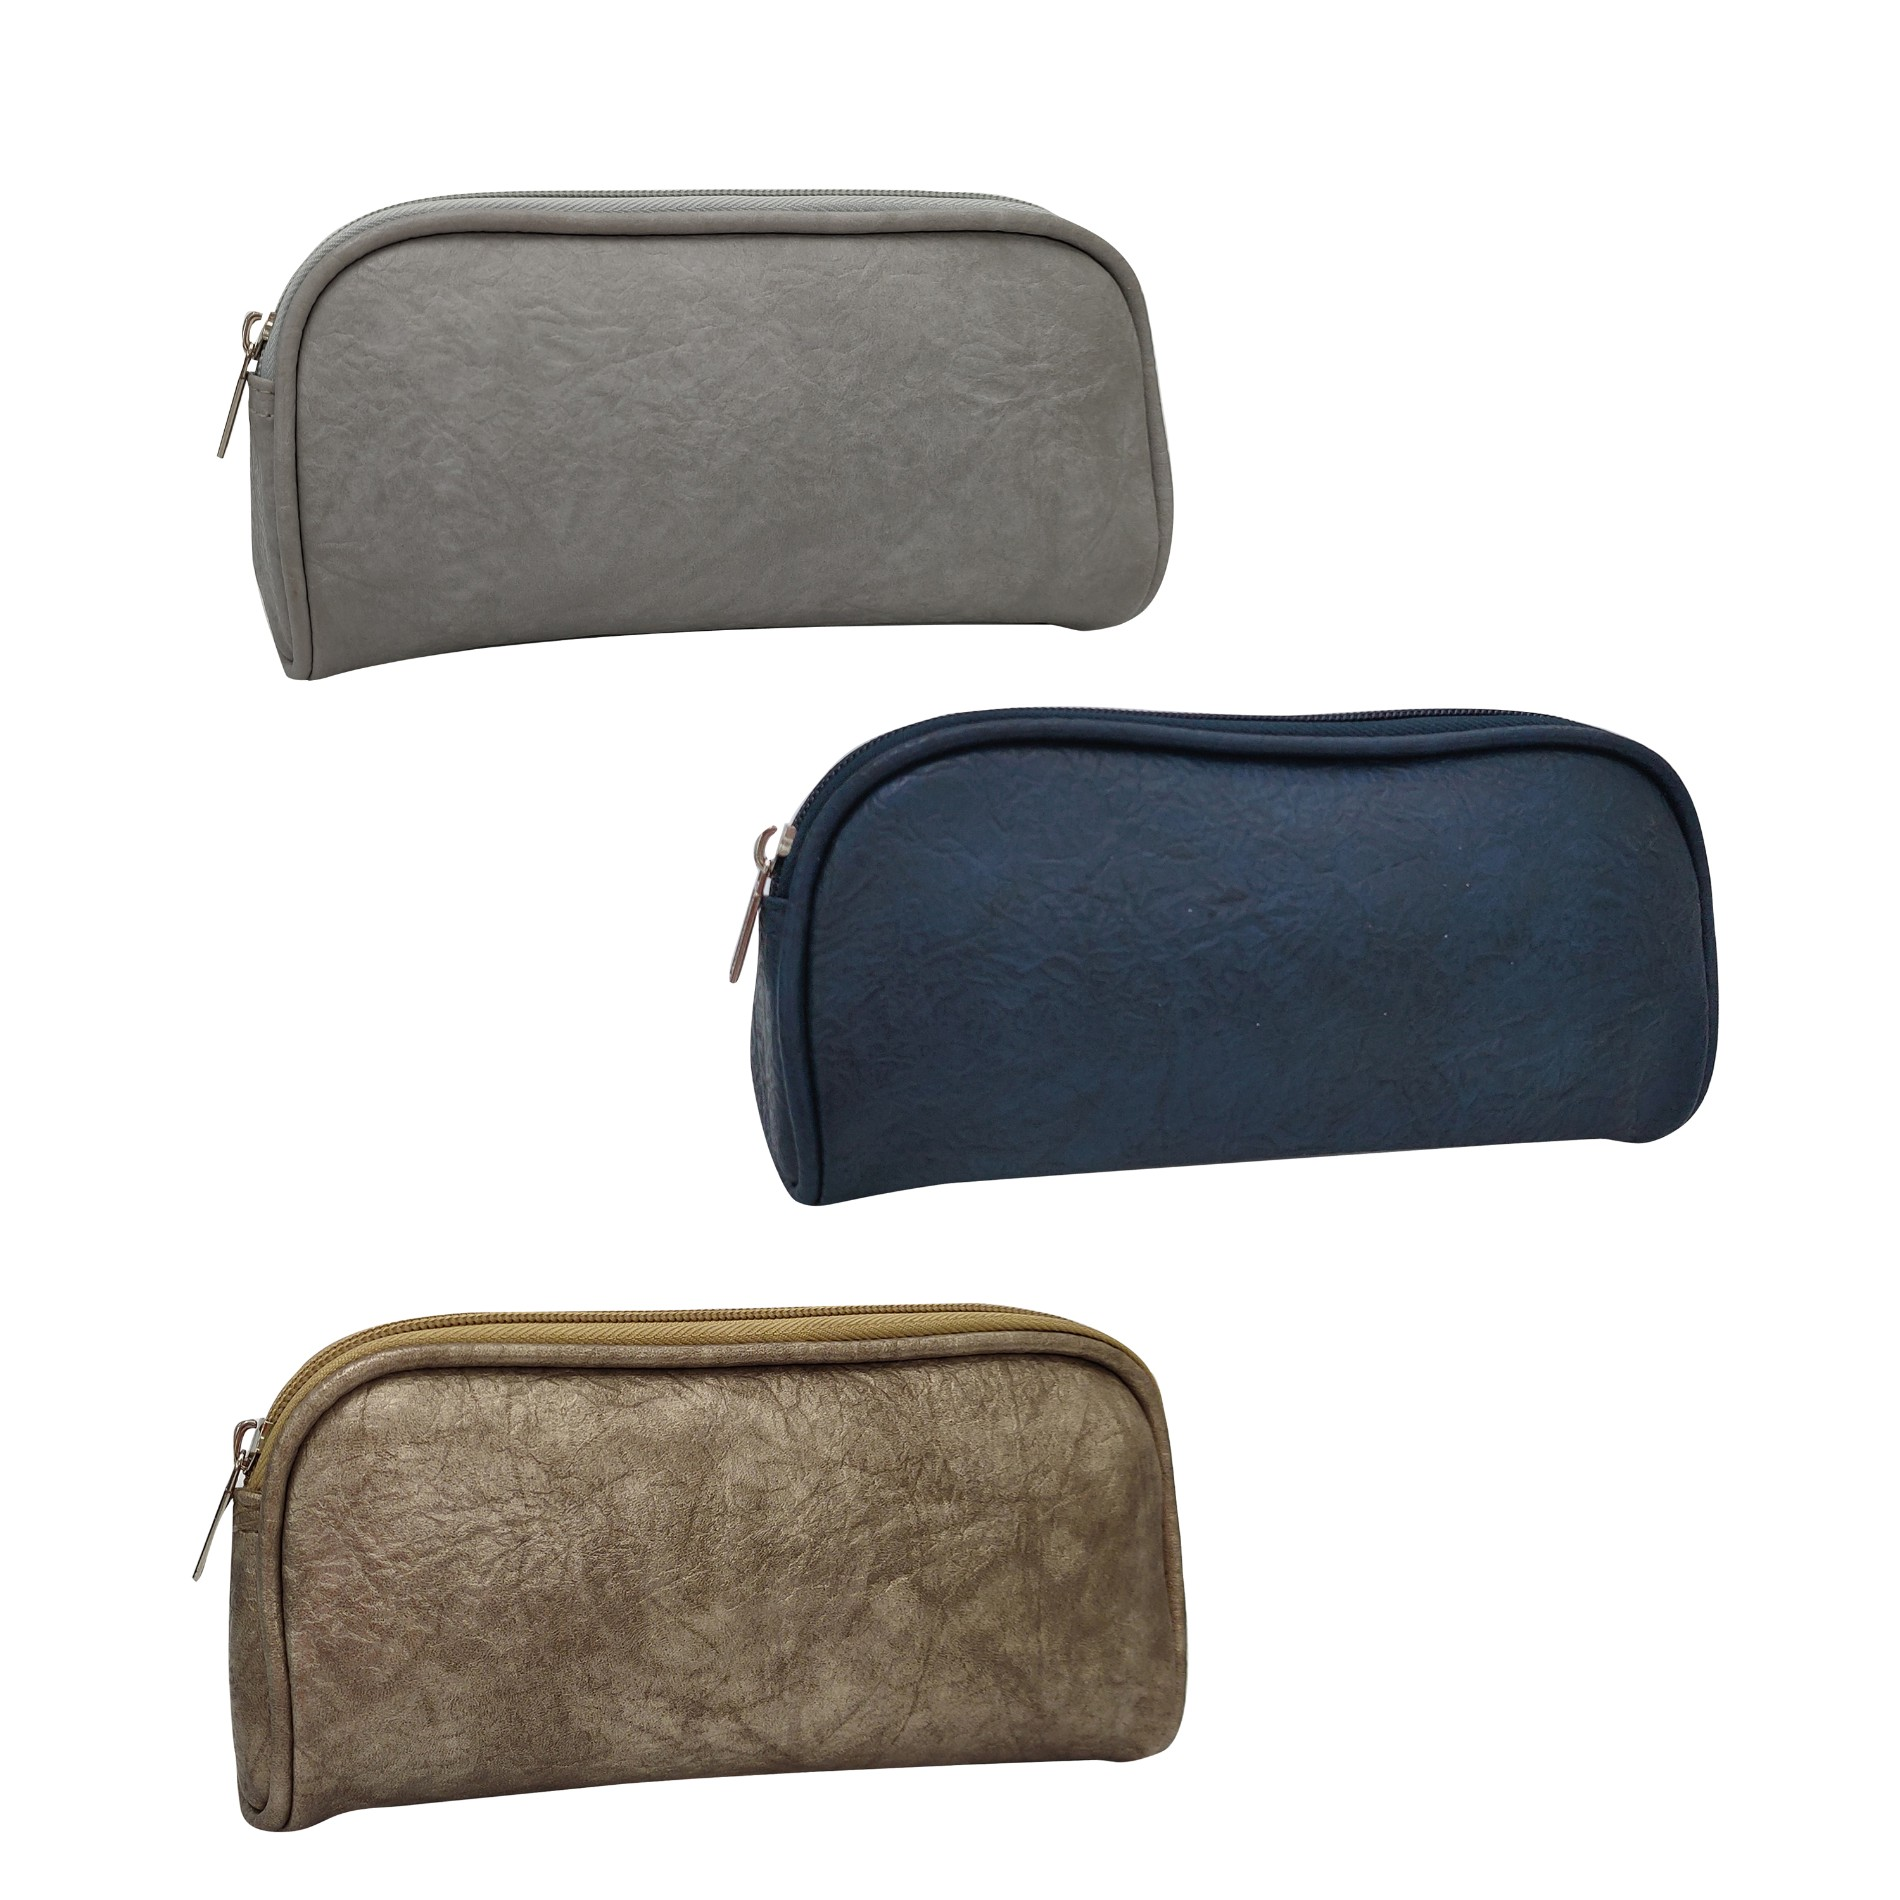 thin and simple cheap pencil pouches Manufacturers, thin and simple cheap pencil pouches Factory, Supply thin and simple cheap pencil pouches